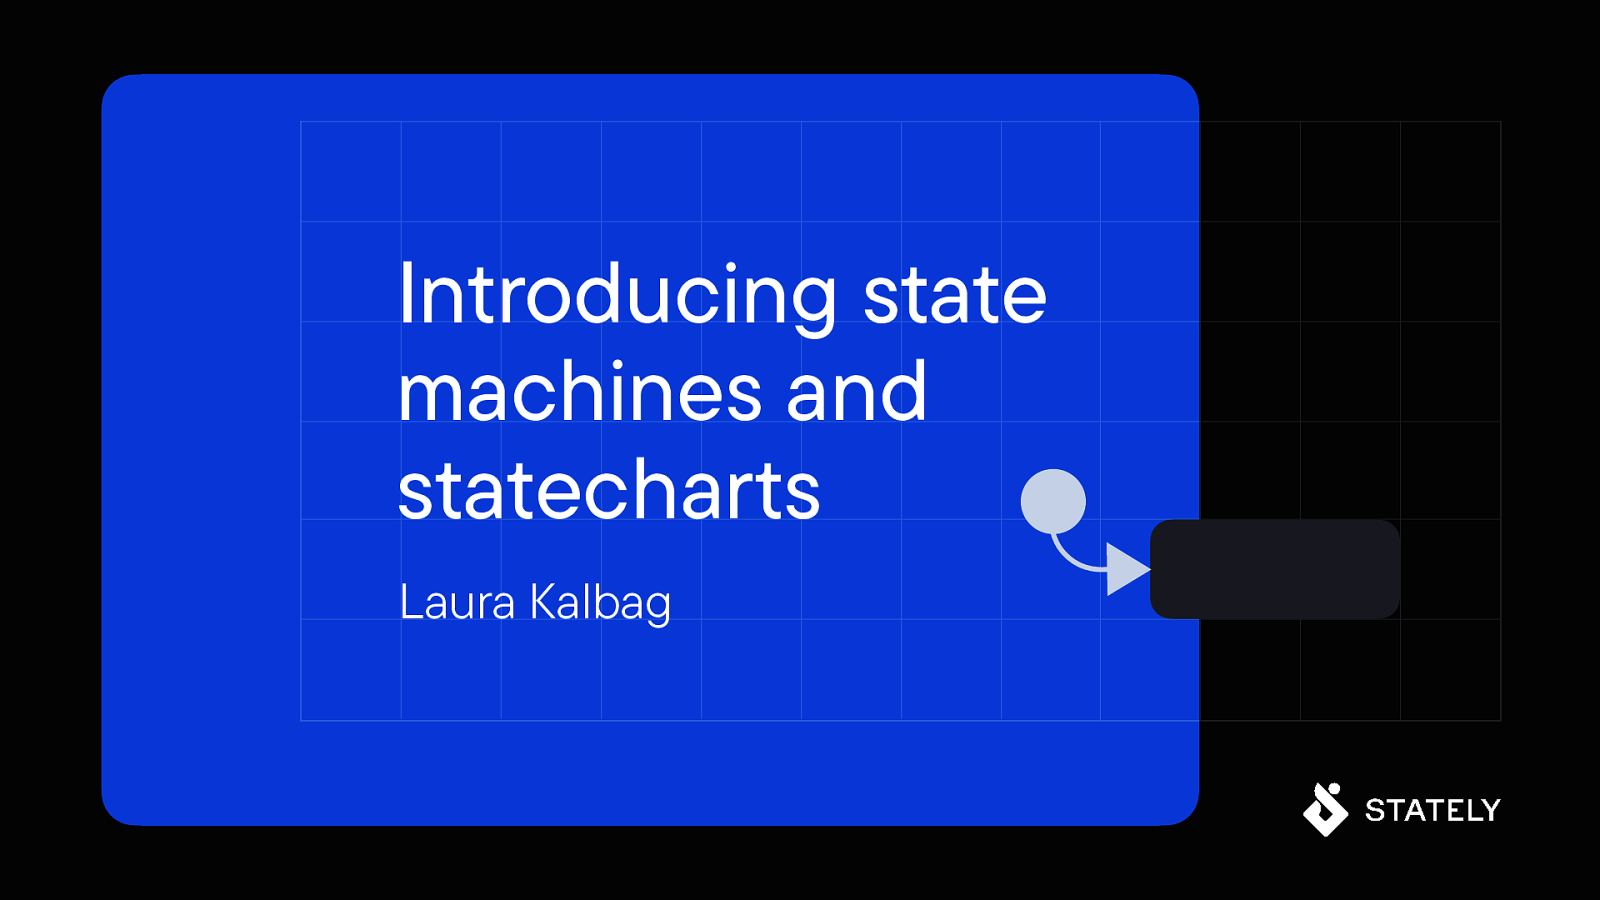 Introducing state machines and statecharts